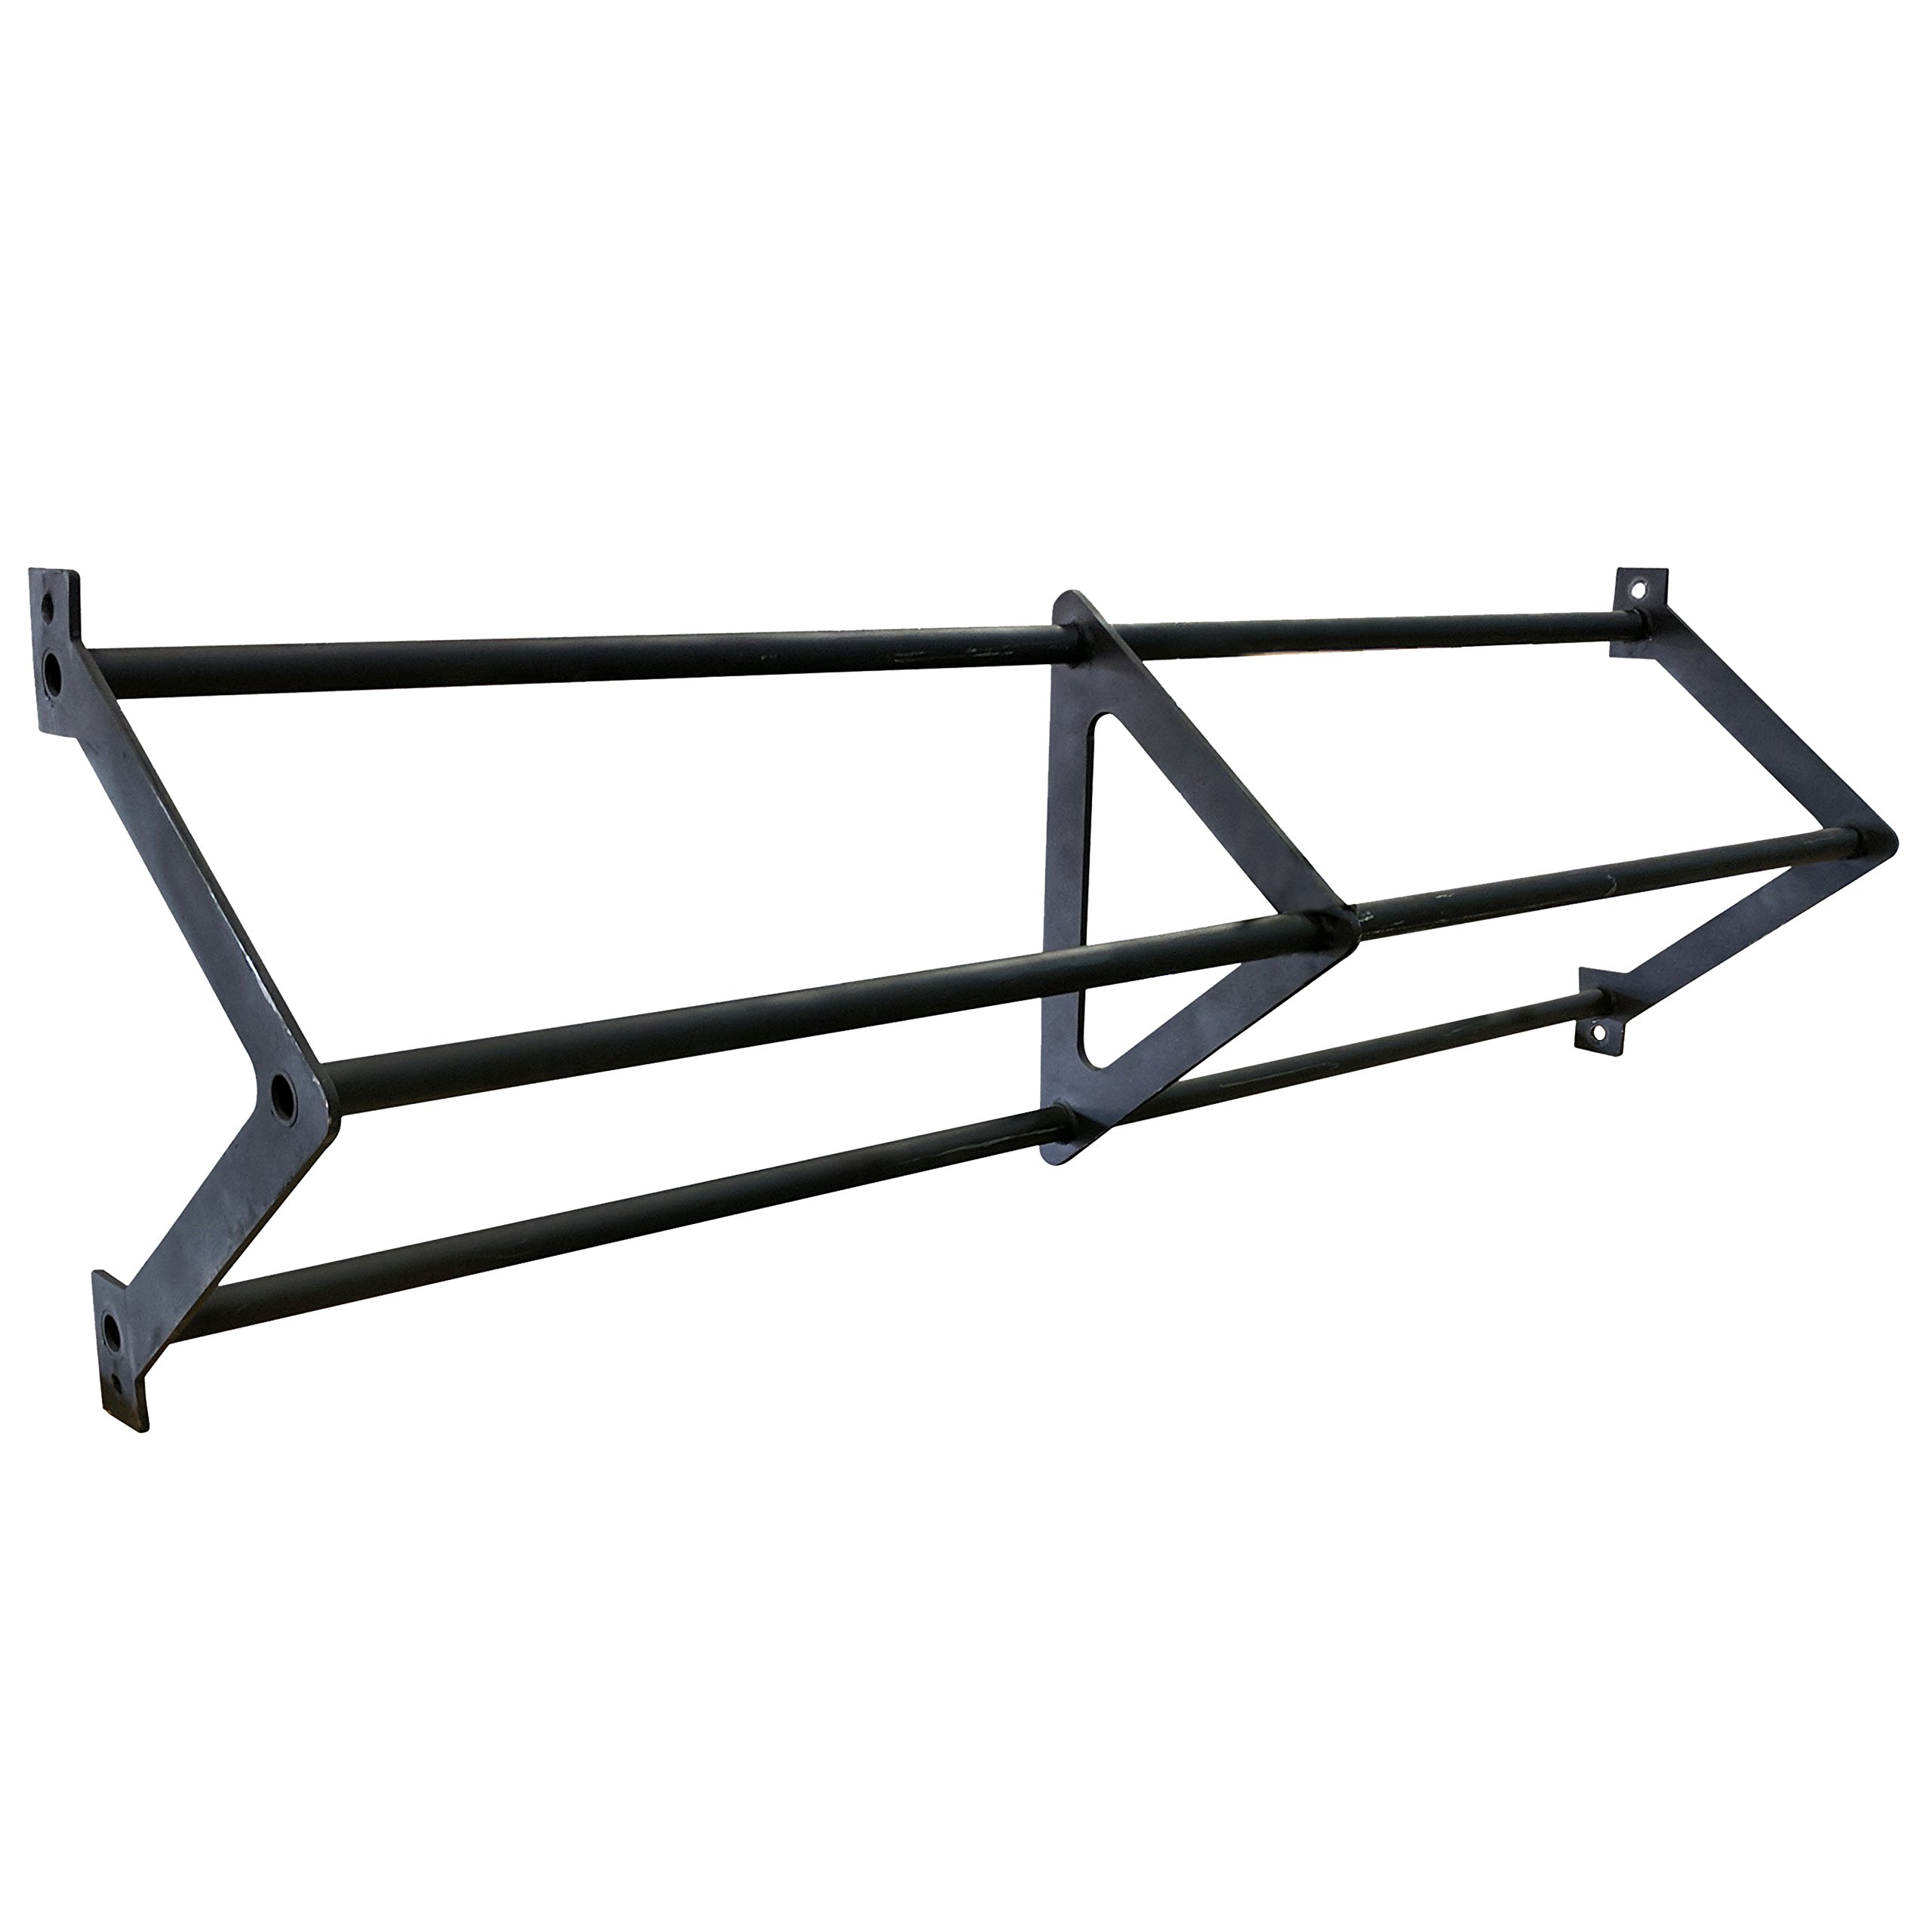 70'' Titan High/Low Bar for Wall Mounted Rigs by Titan Fitness